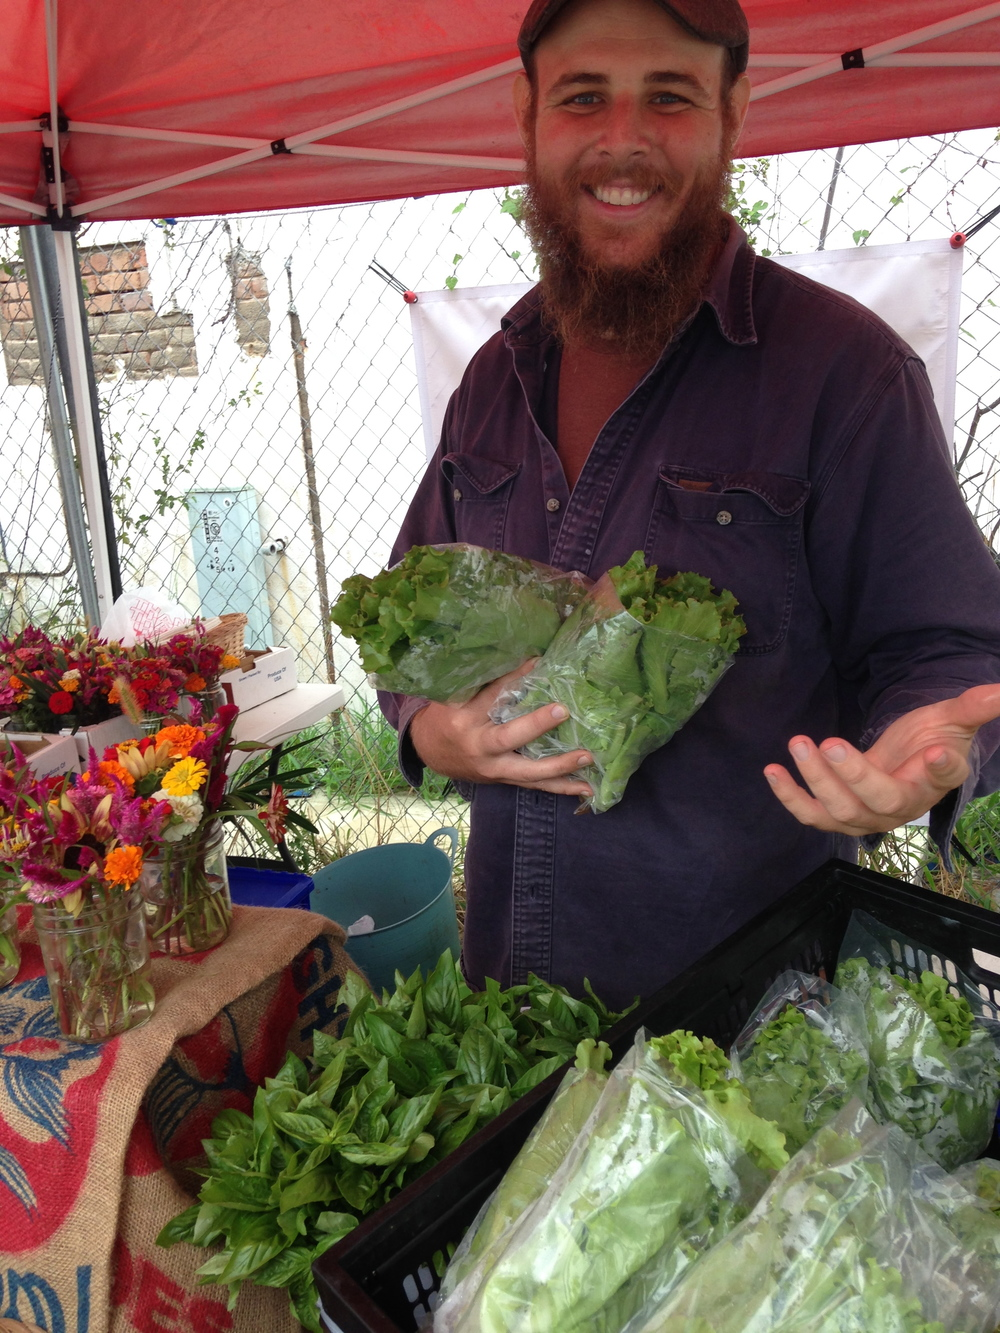 McFarmer manning the booth at last week's market. Ain't he cute?